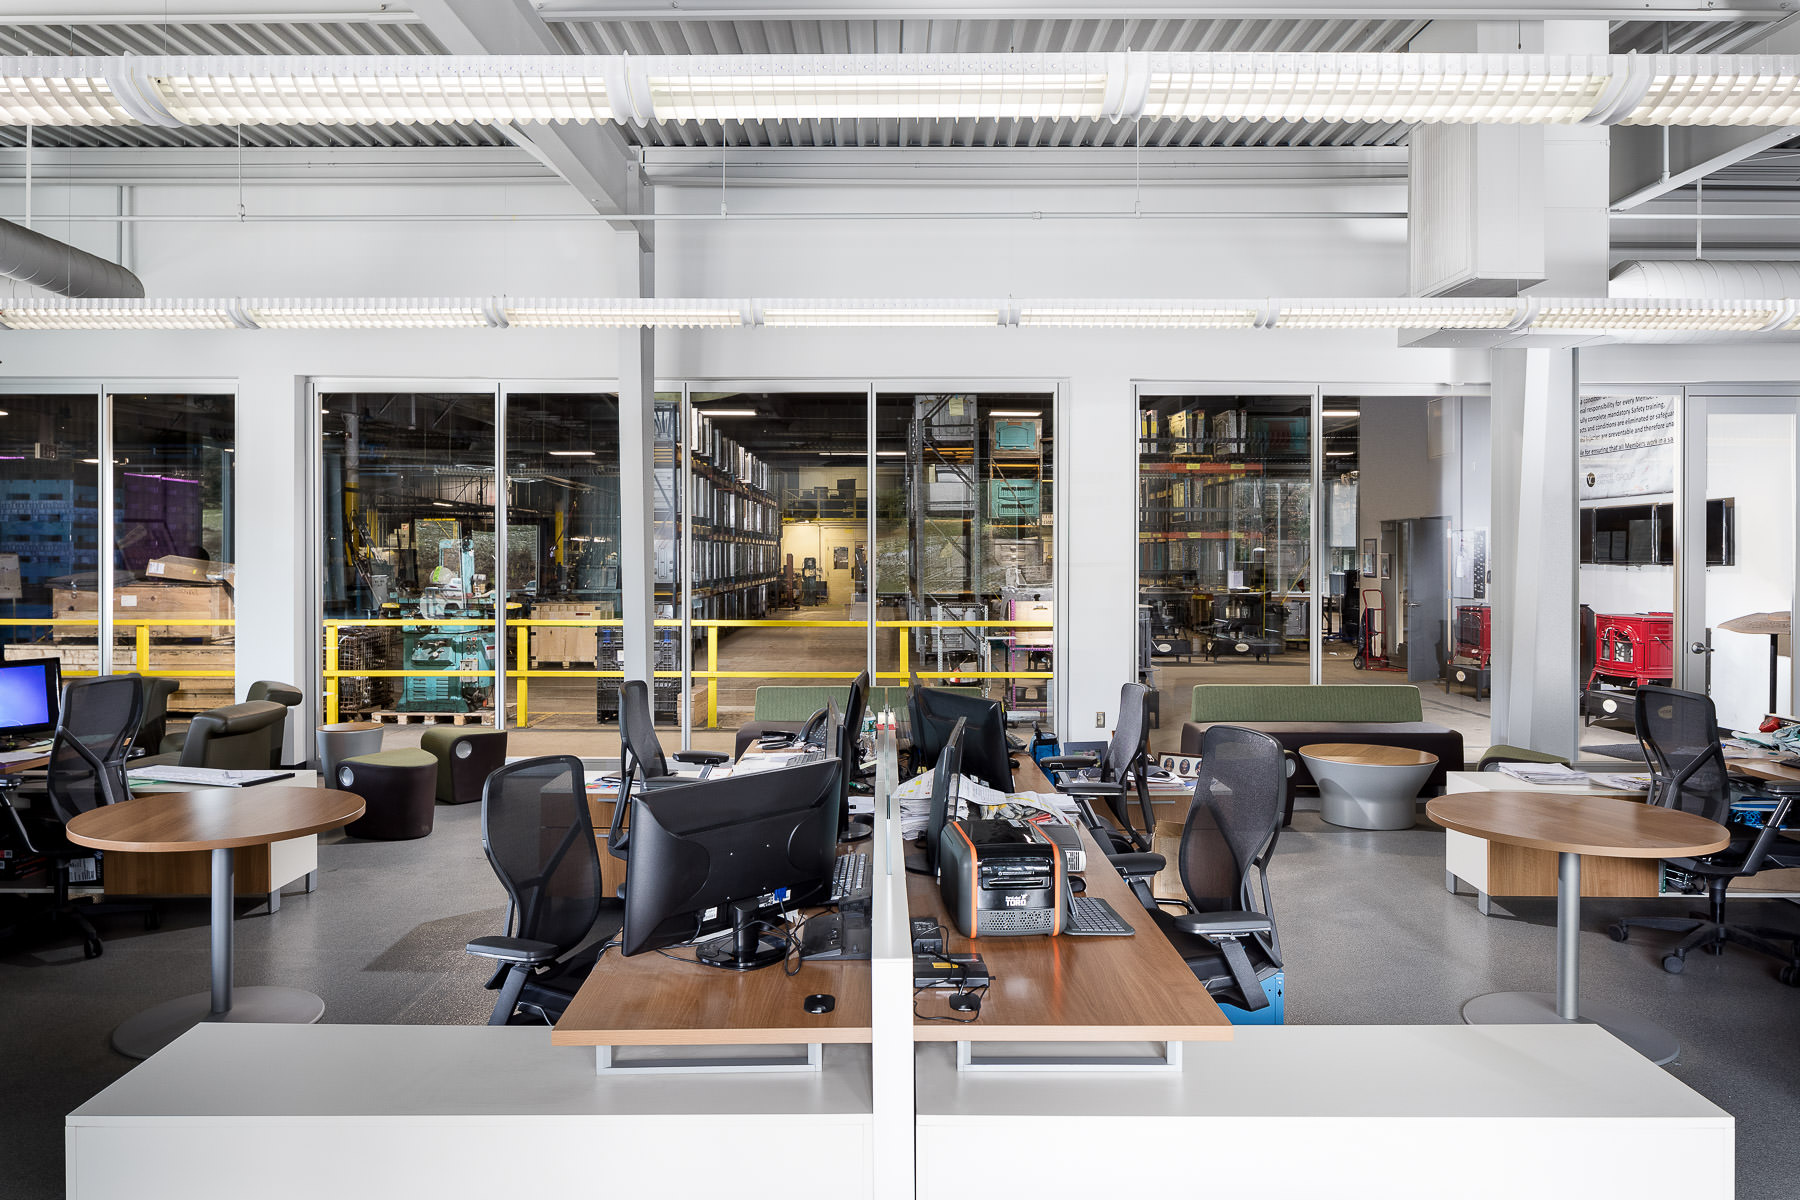 An interior photo of the modern office space with an interior wall of windows at the Vermont Castings manufacturing facility built by Neagley & Chase Construction and photographed by Stina Booth